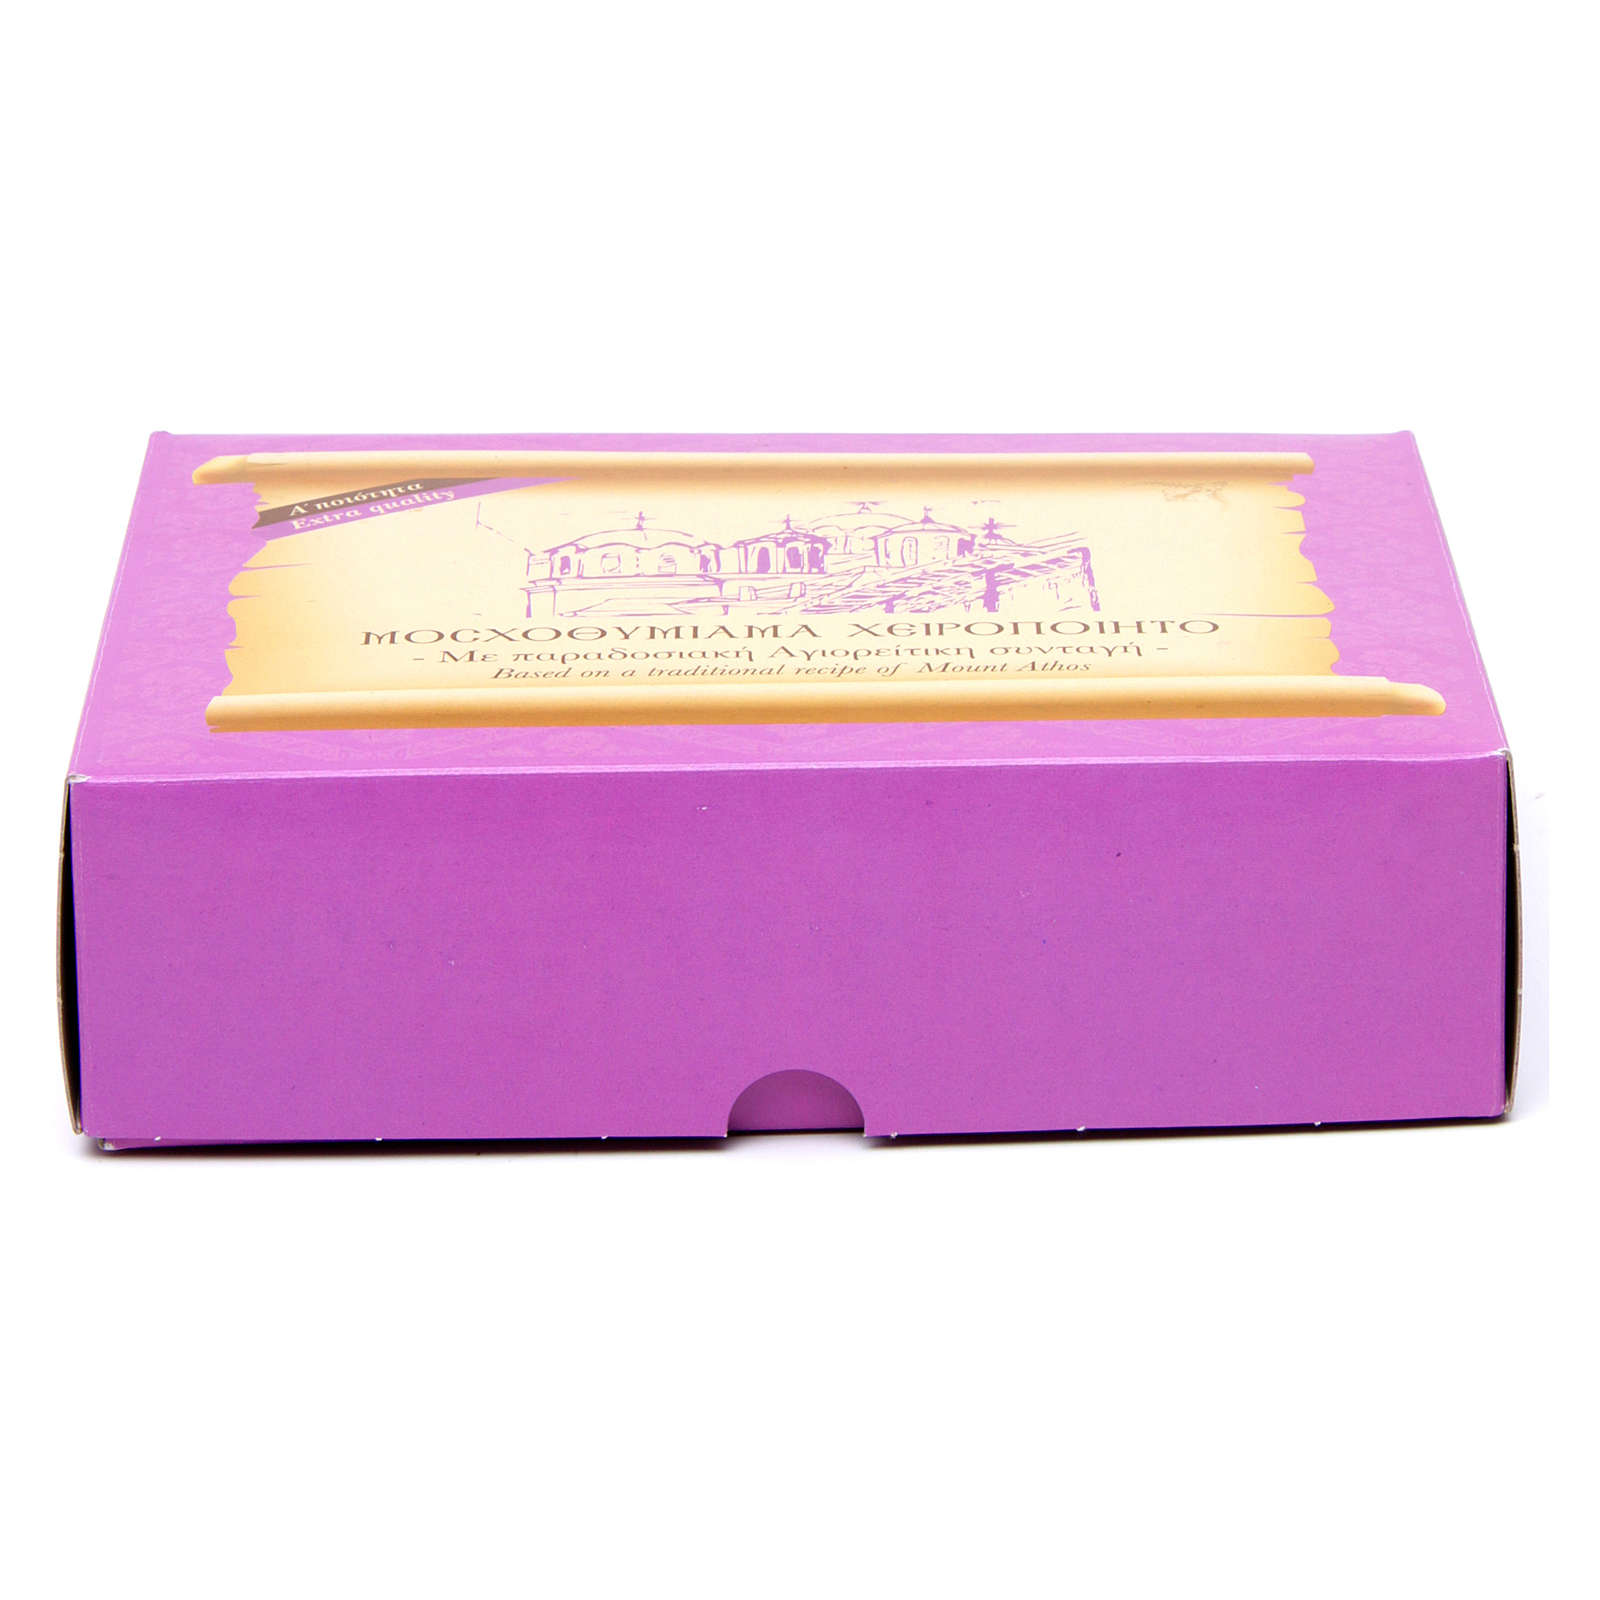 Lemon-scented Greek incense 1 kg 3